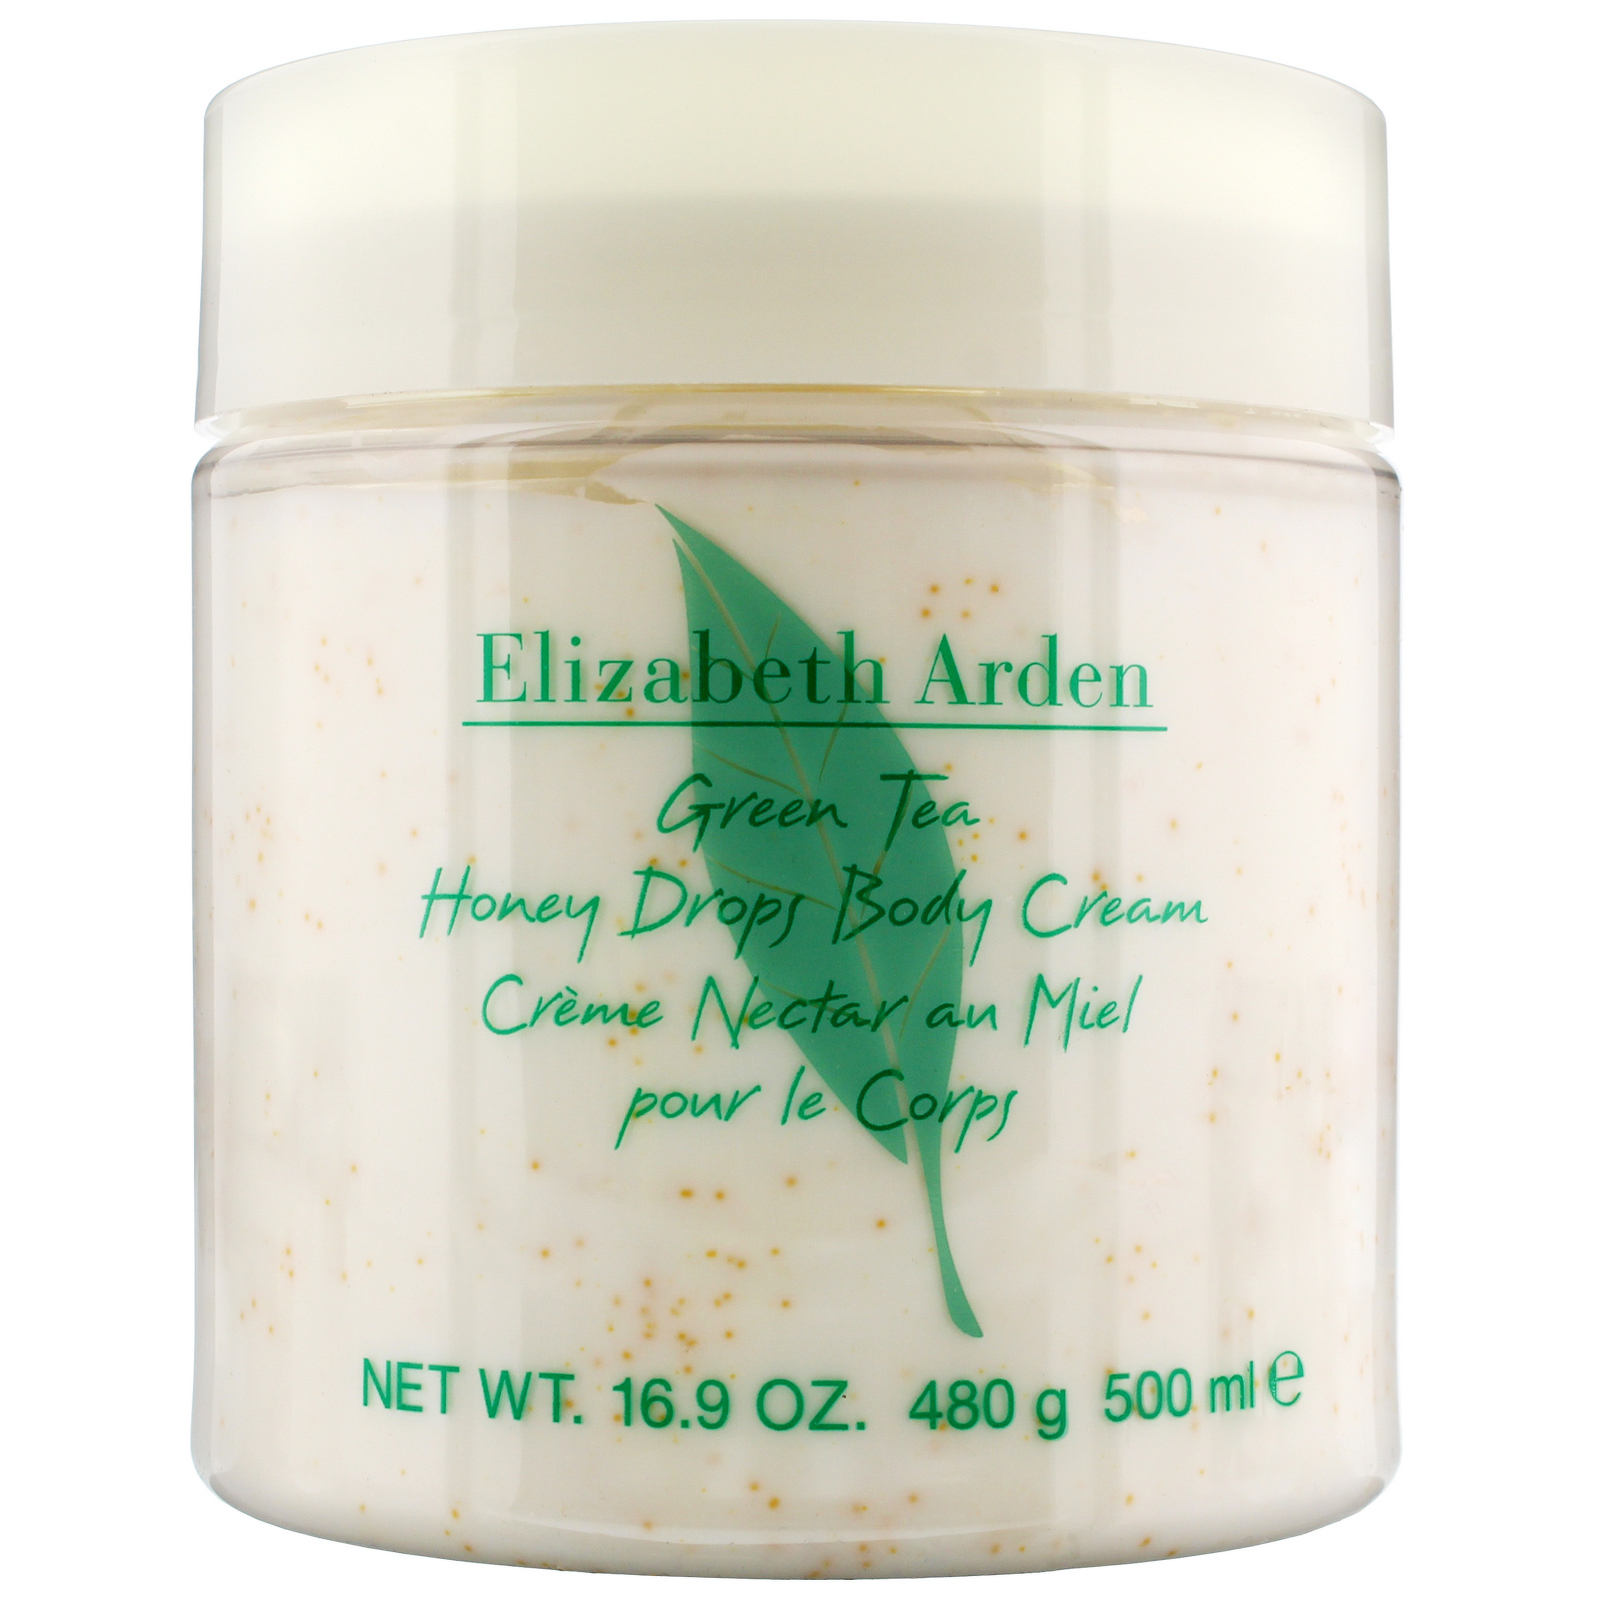 Elizabeth Arden Green Tea Honey Drops Body Cream 500ml / 16.9 fl.oz.